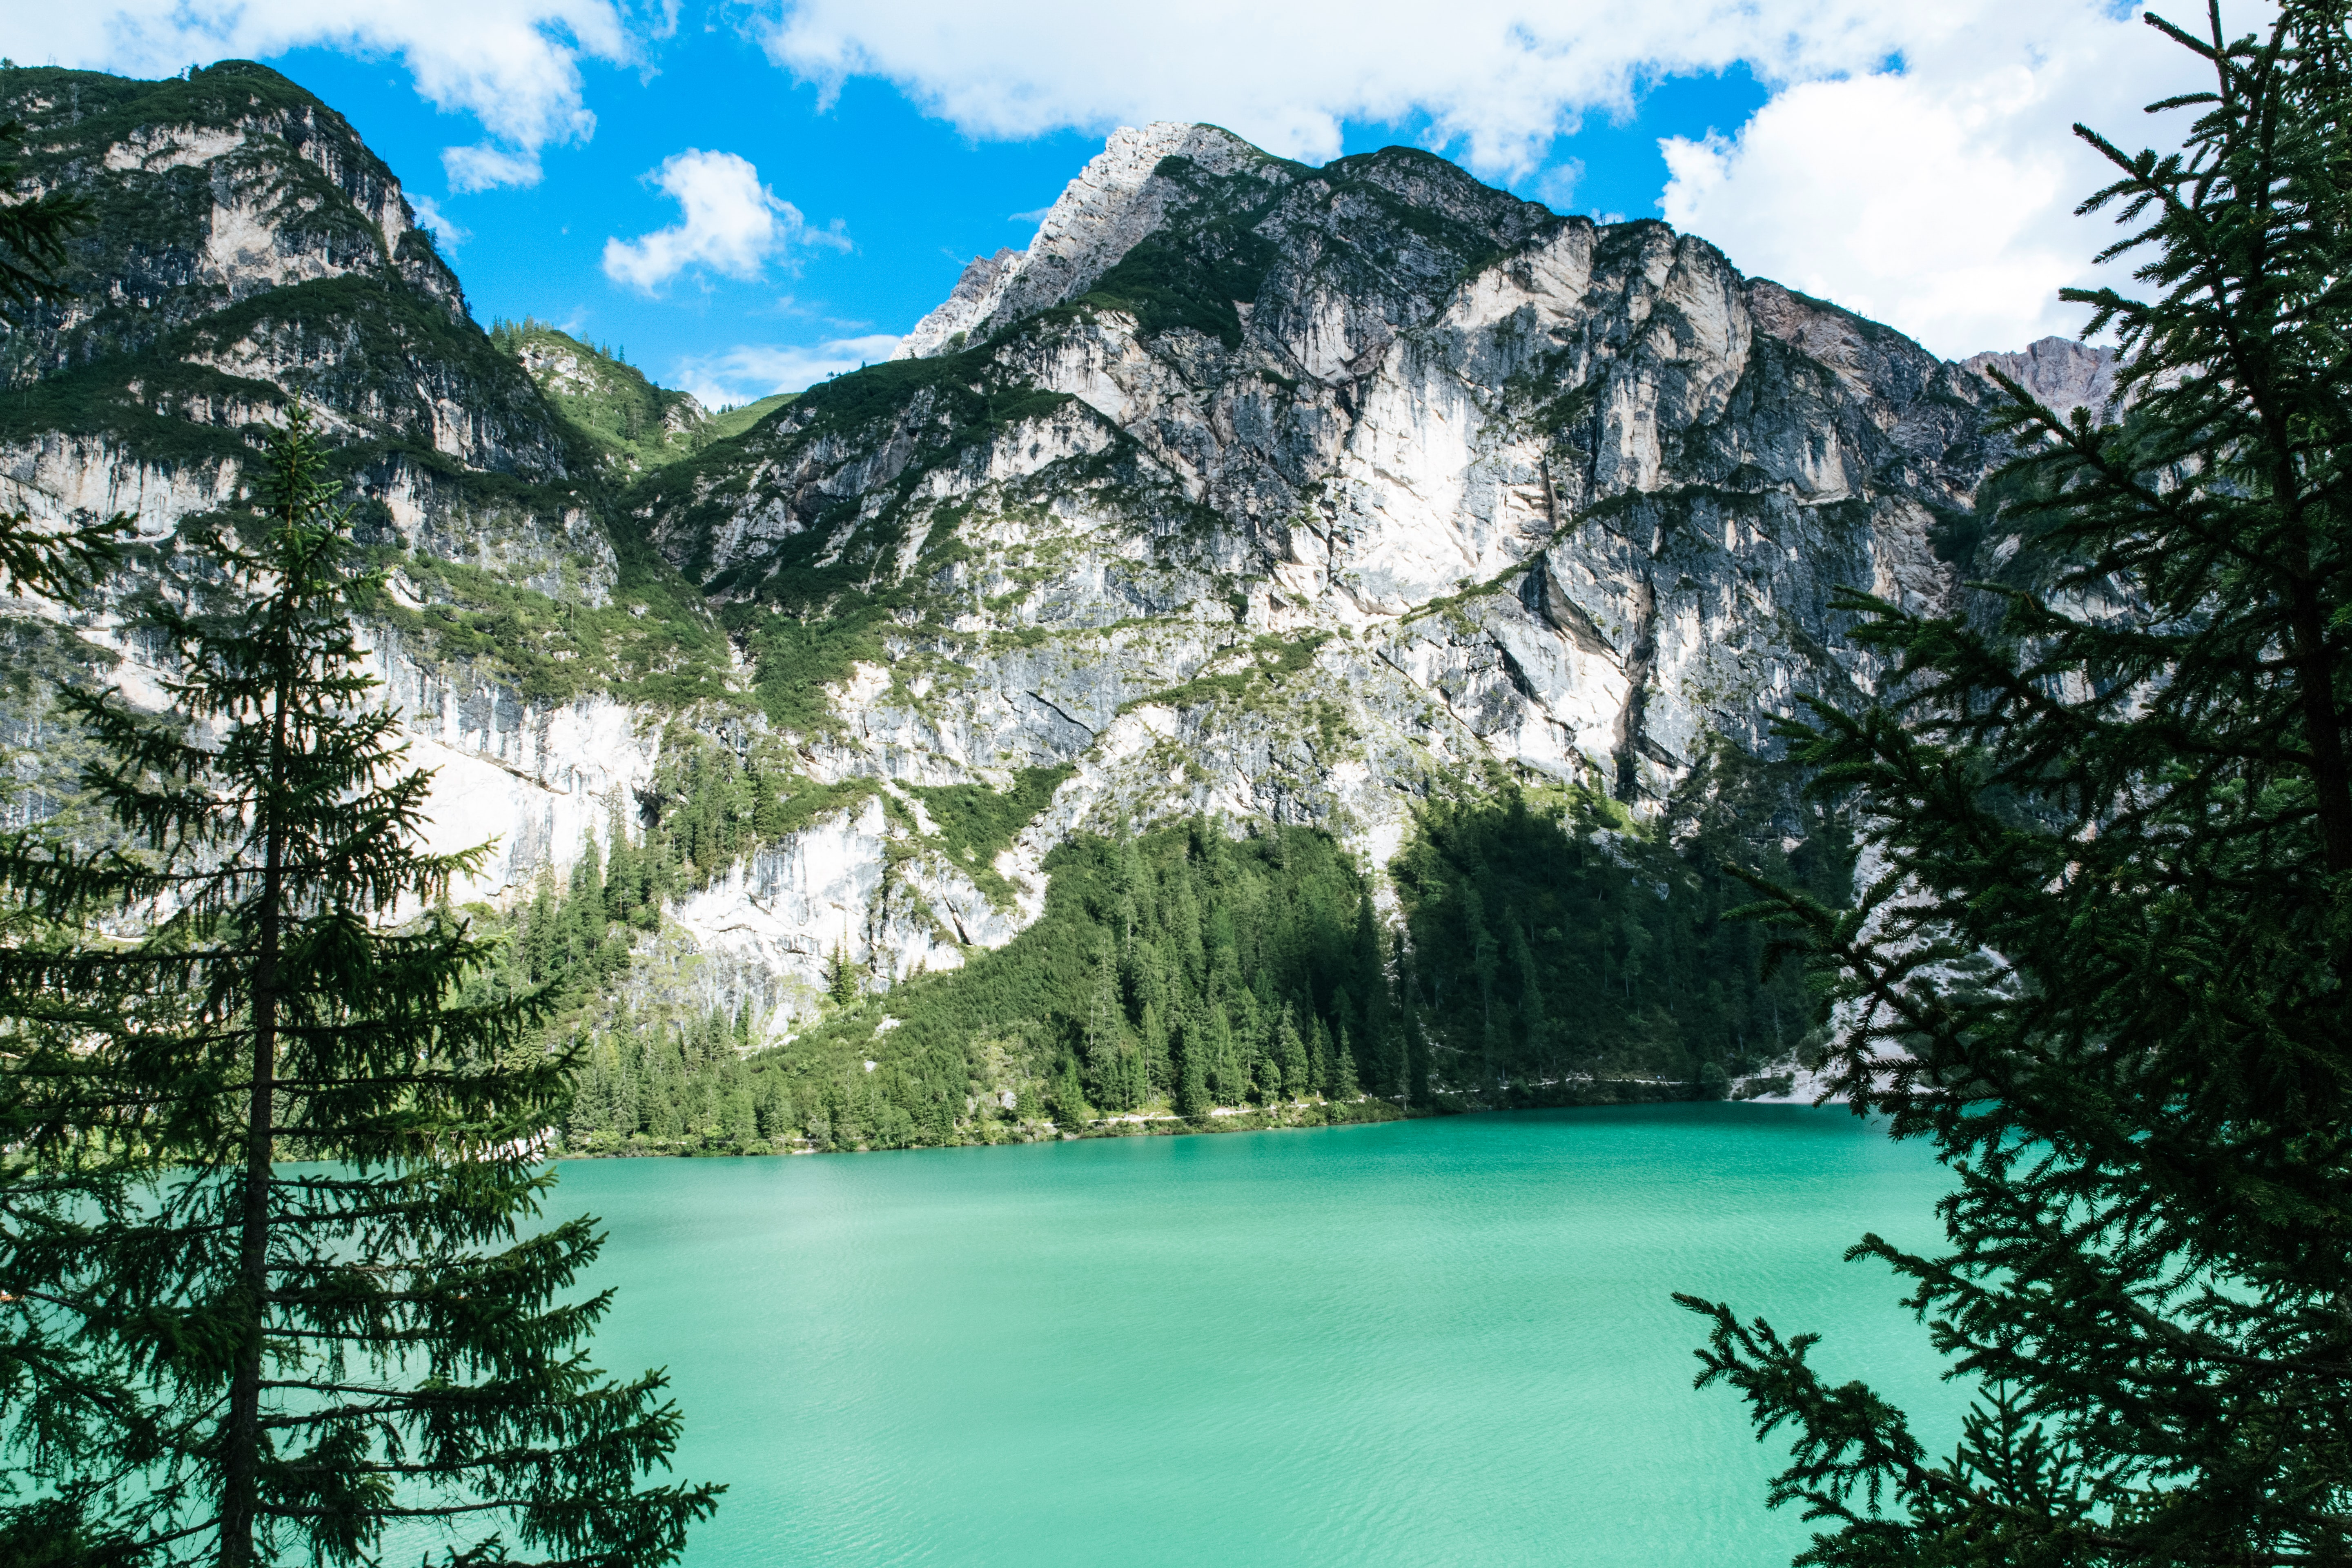 A picturesque landscape with a turquoise lake at the foot of a rugged mountain